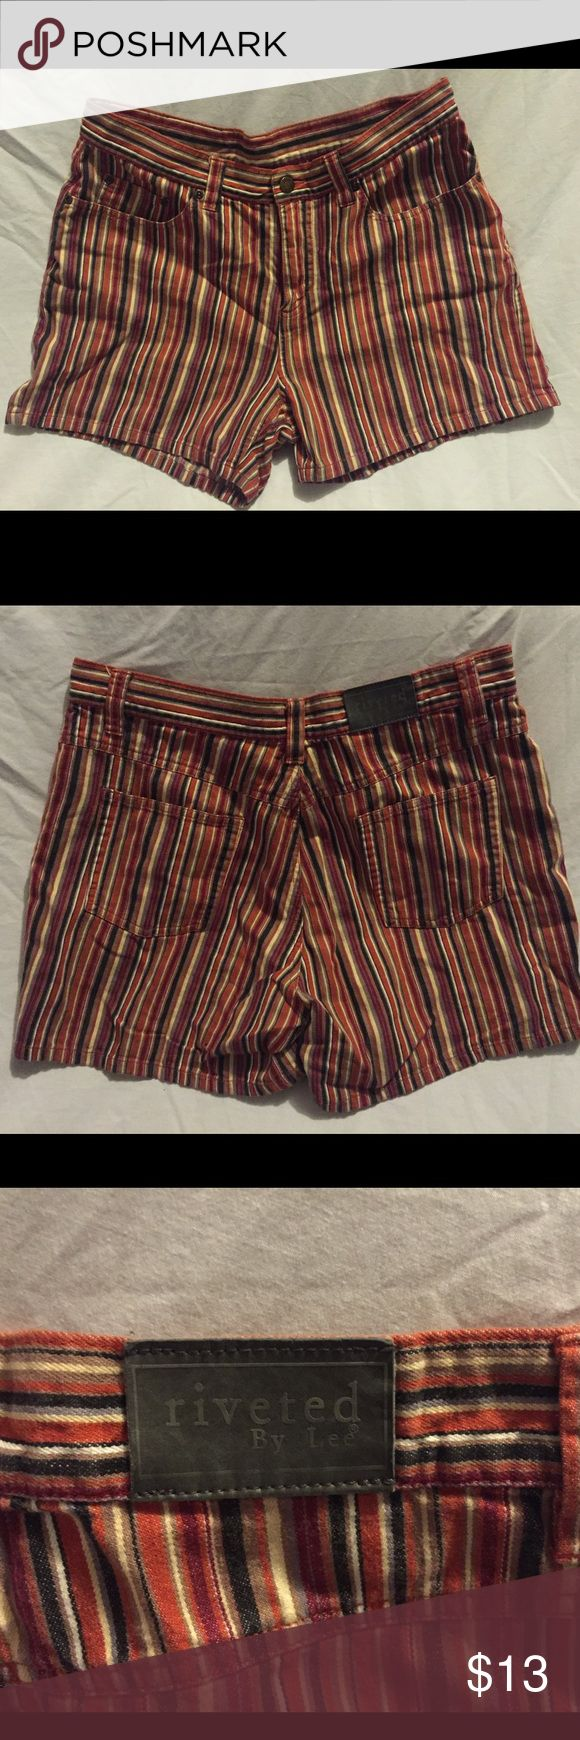 Women's Retro Colored Striped Shorts 💛 Size Medium High Waist Shorts, vintage and super comfortable. With Black, orange cream grey maroon purple stripes all blended very nicely. 100% cotton Lee Shorts Skorts